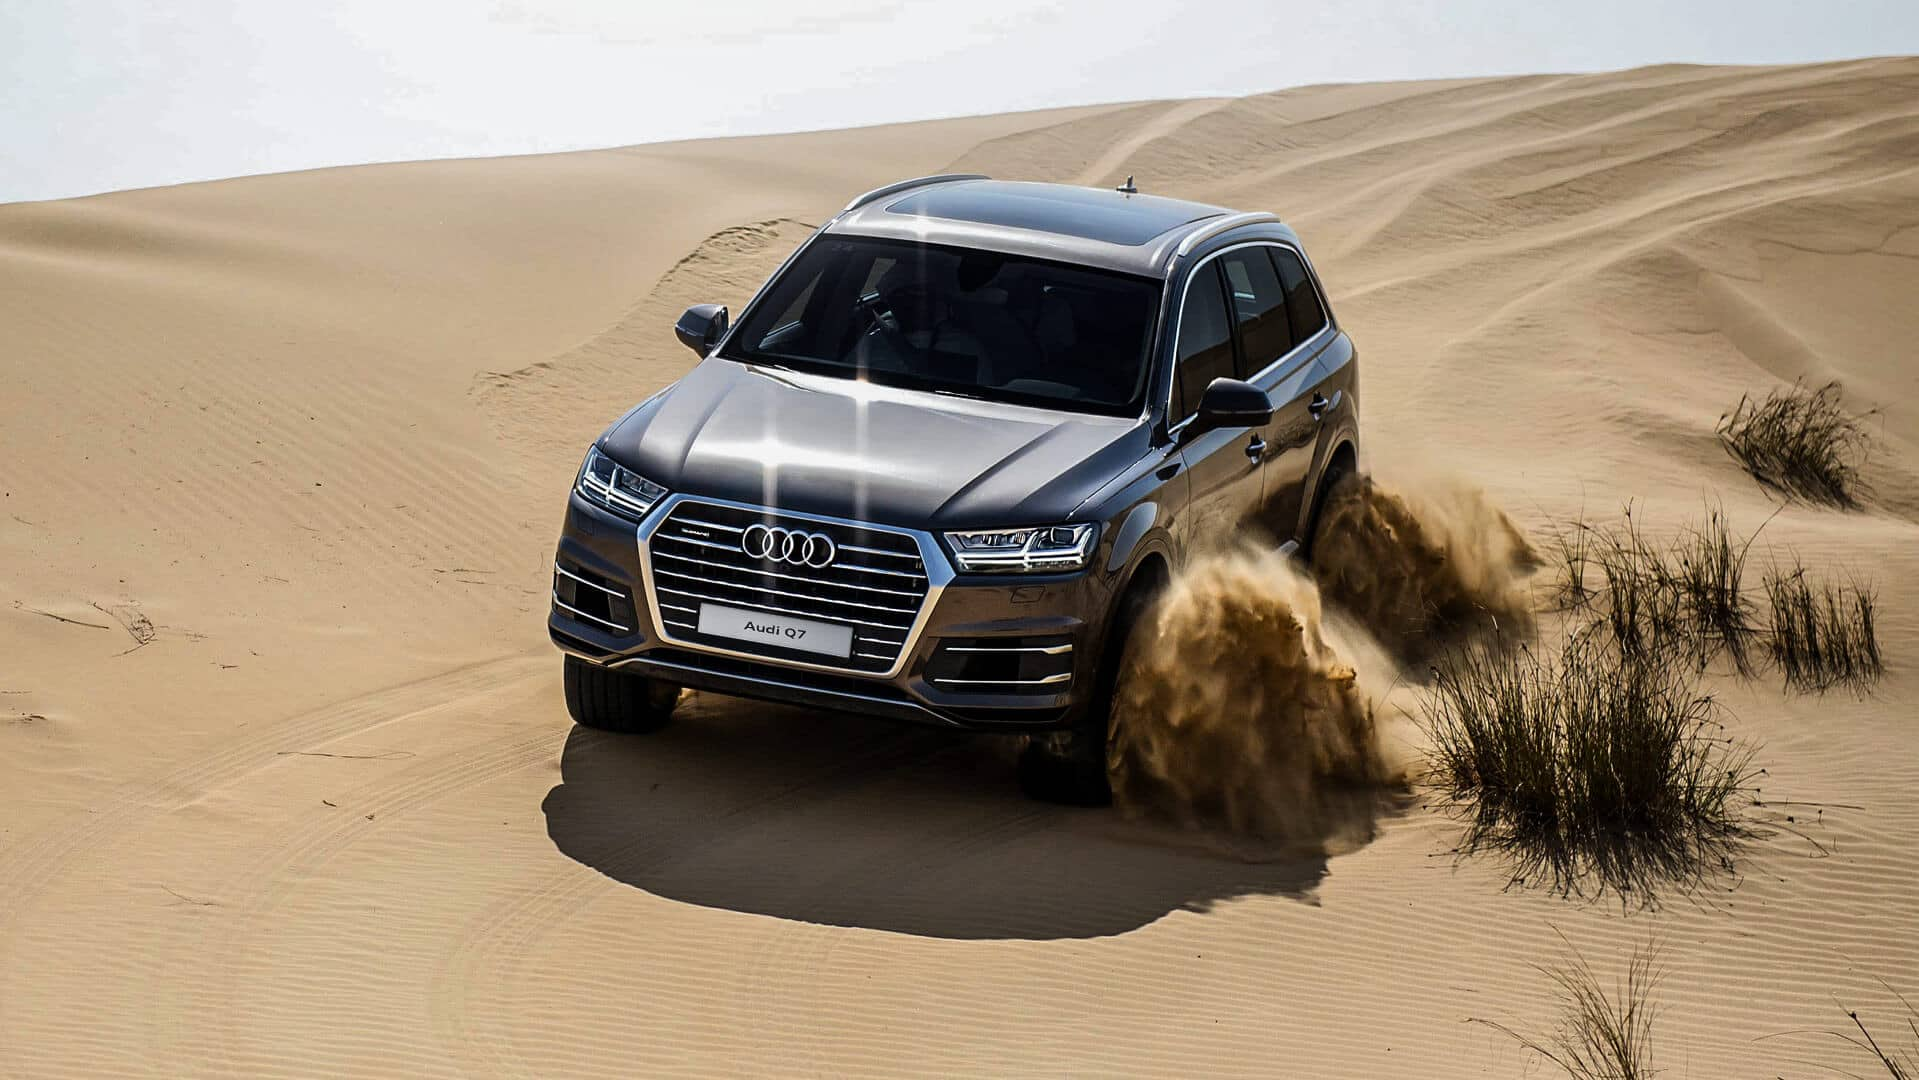 Q7_audi_SUV_silver_front_sand_2017.jpg